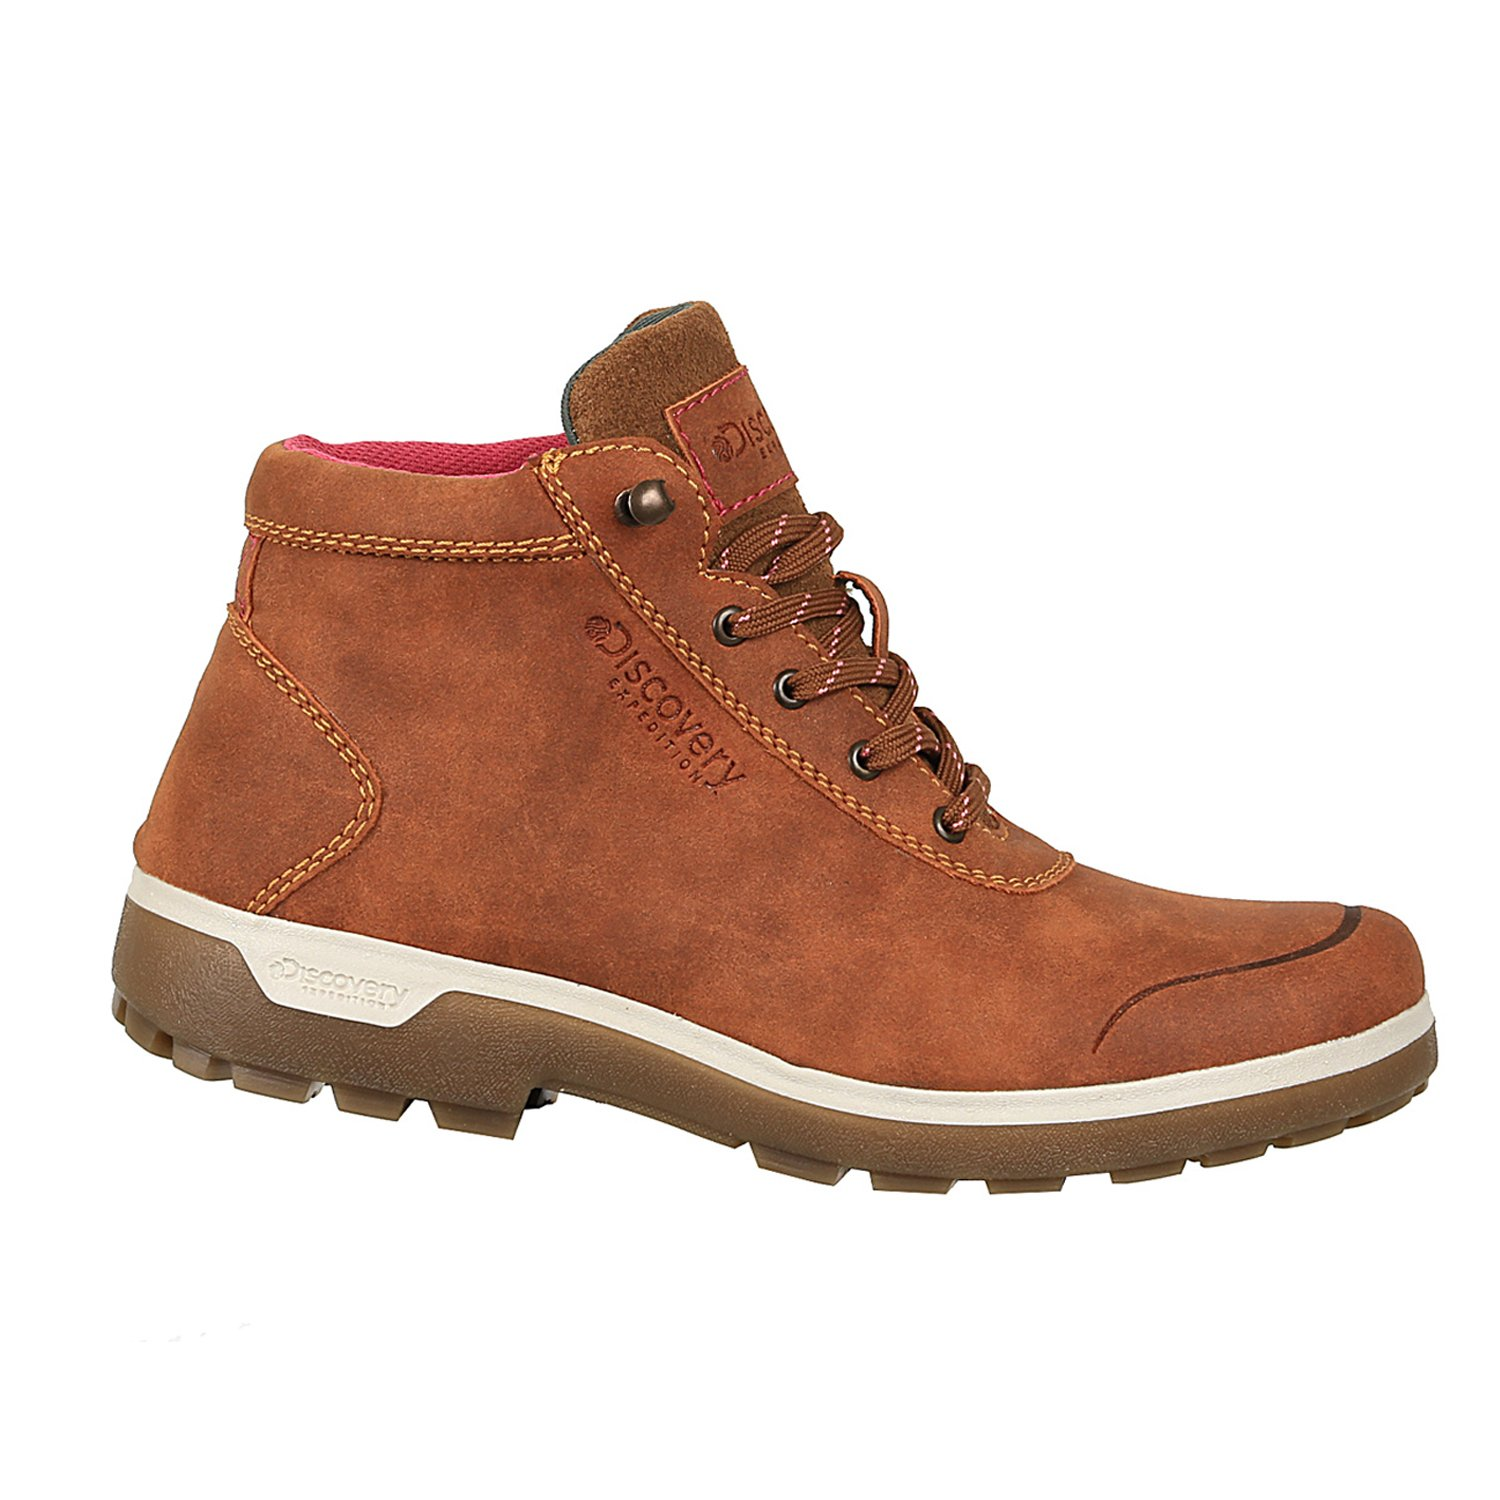 Discovery Expedition Womens Adventure Mid Hiking Boot Cinnamon Size 7.5